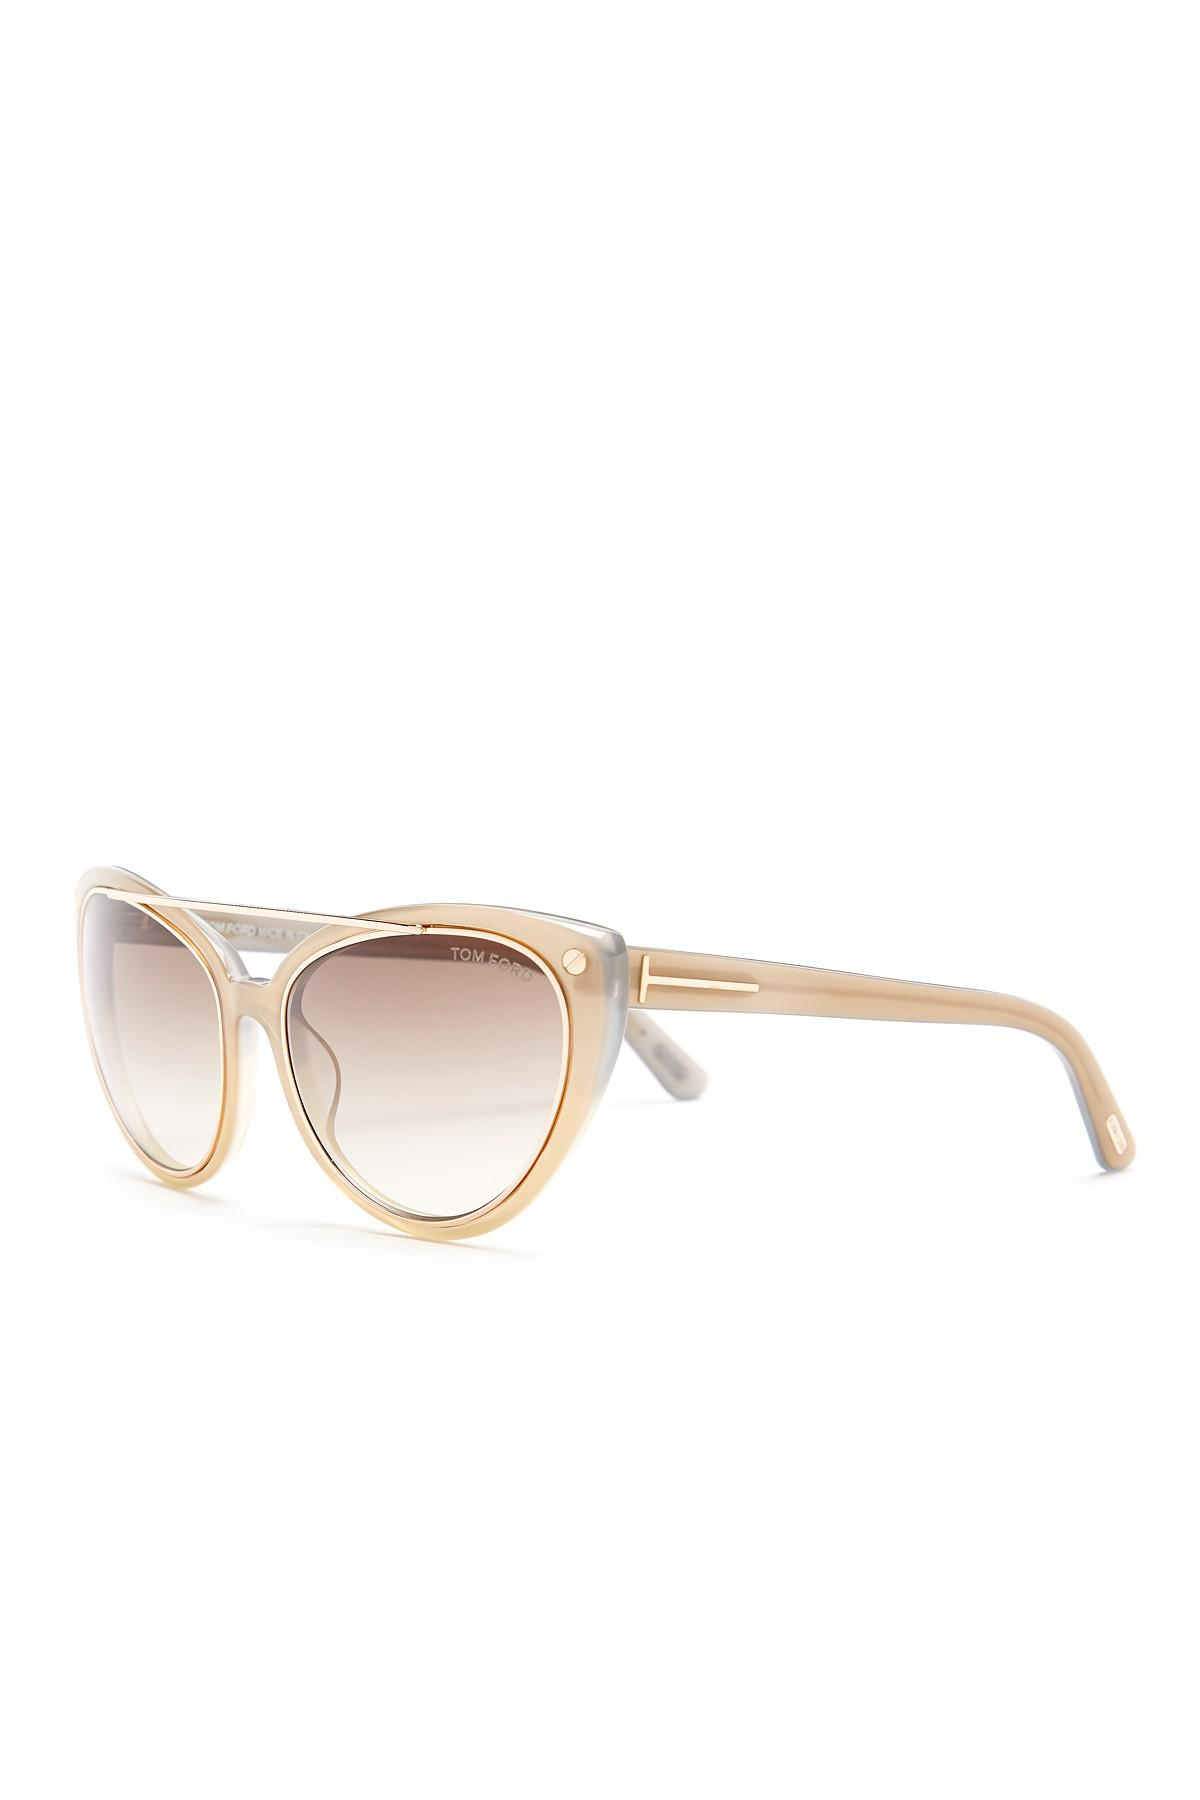 ee49f2d24d5c Gallery. Previously sold at  Nordstrom Rack · Women s Acetate Sunglasses ...